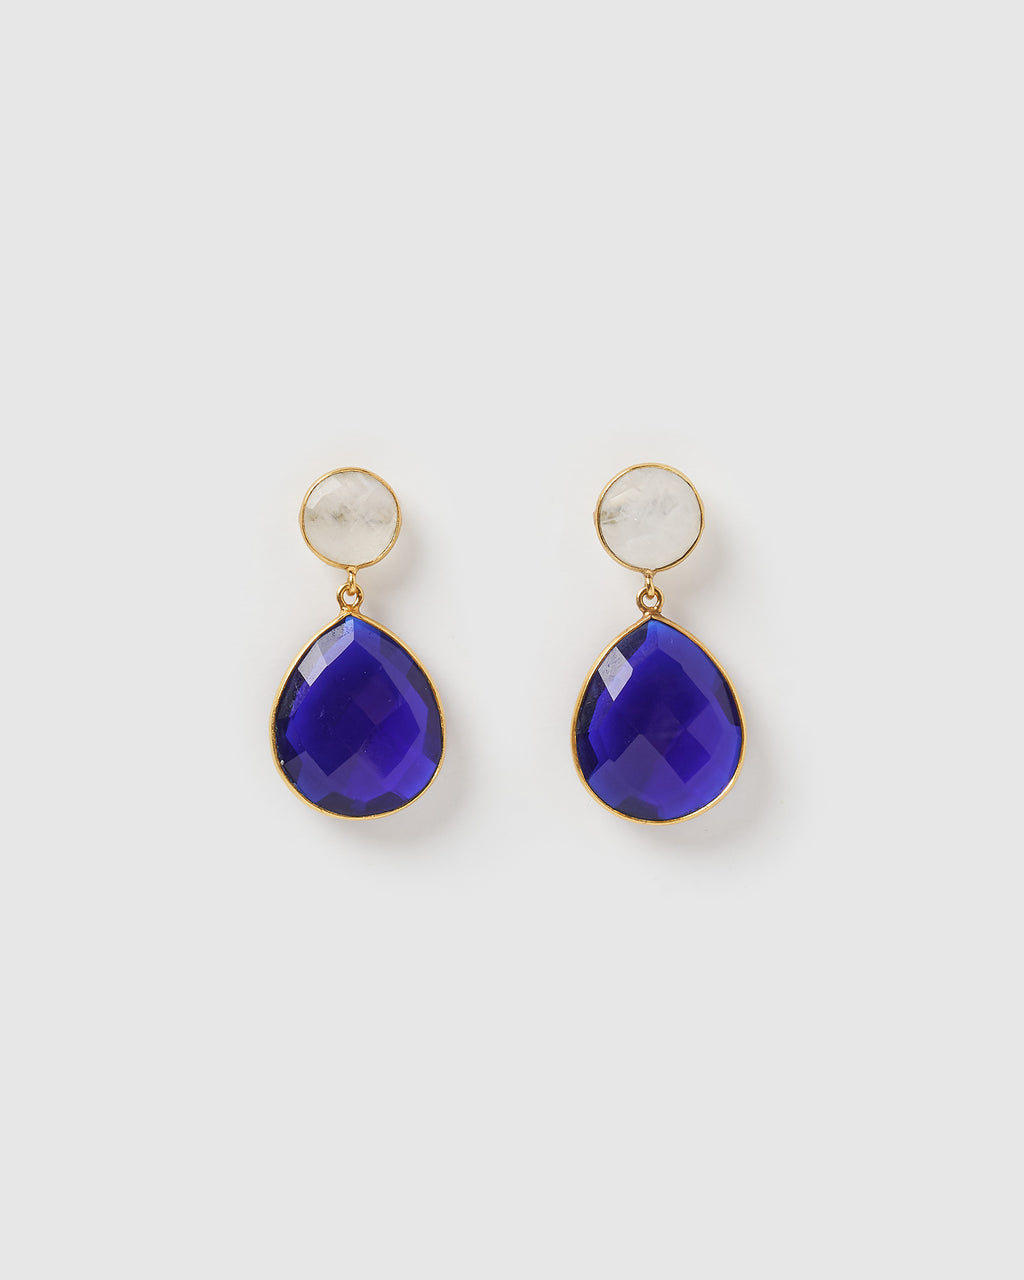 Izoa Gala Earrings Sapphire Quartz Moonstone Gold